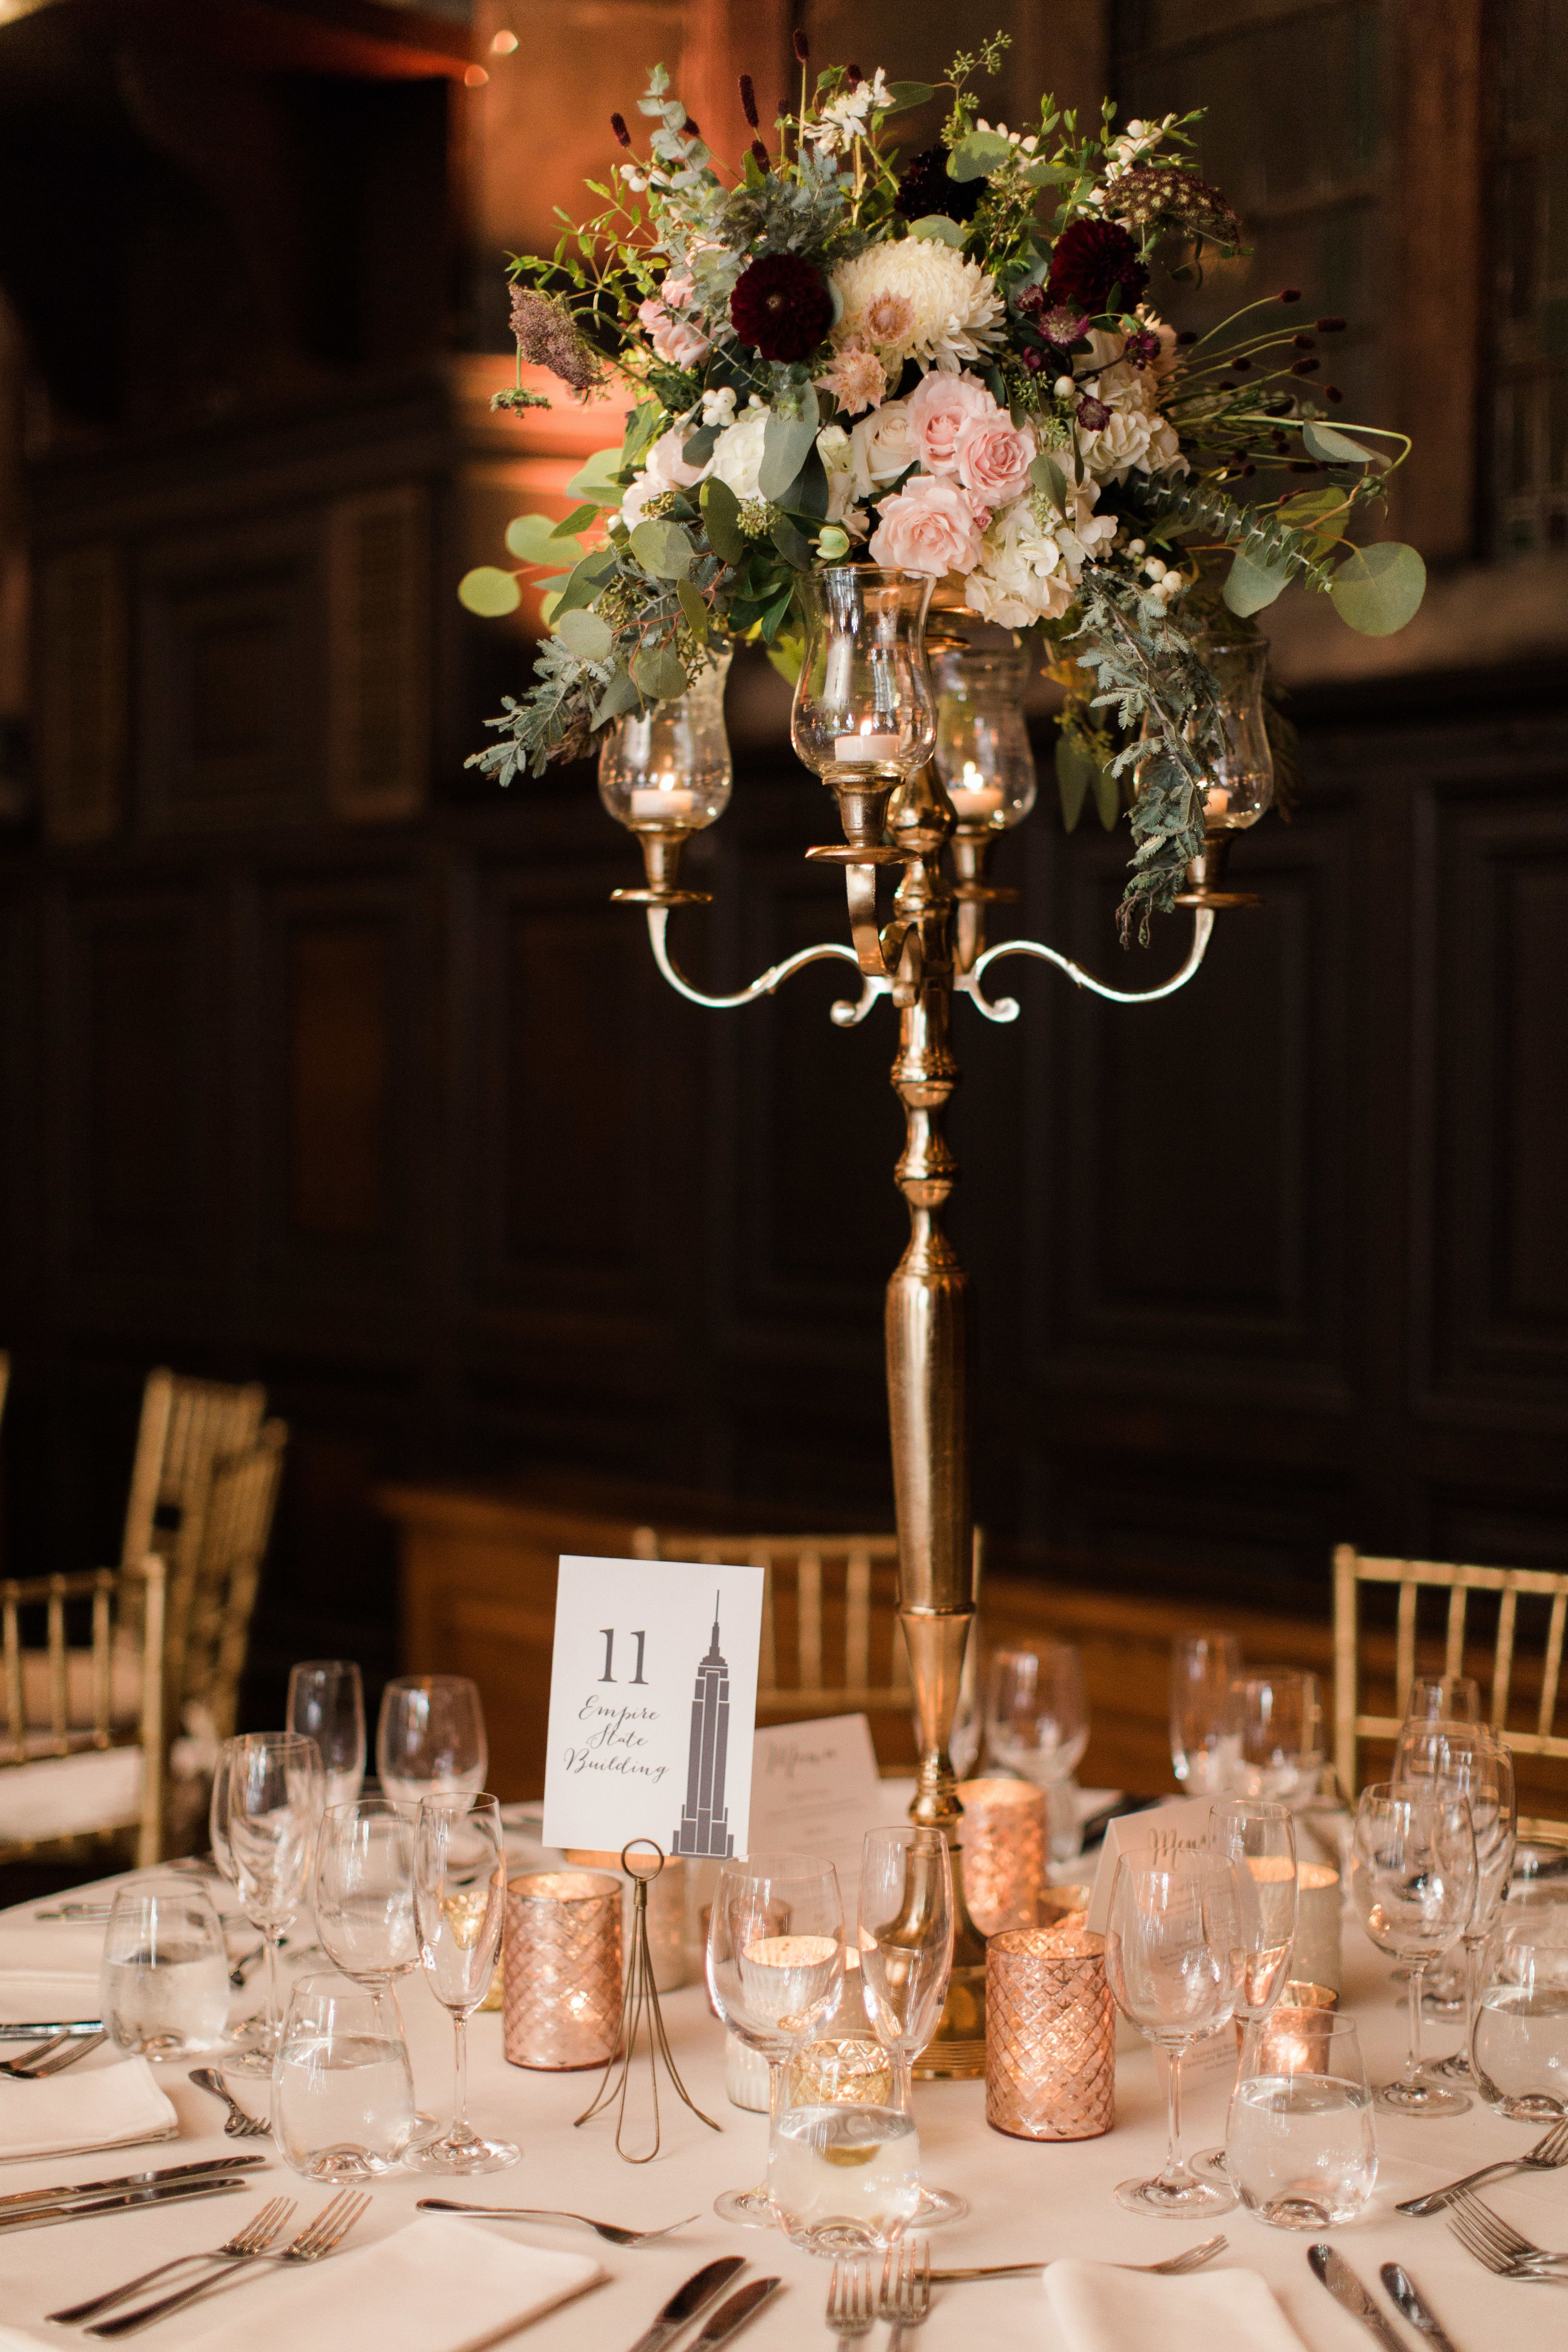 Rainy Day Romance In New York City Floral Designs Reception And